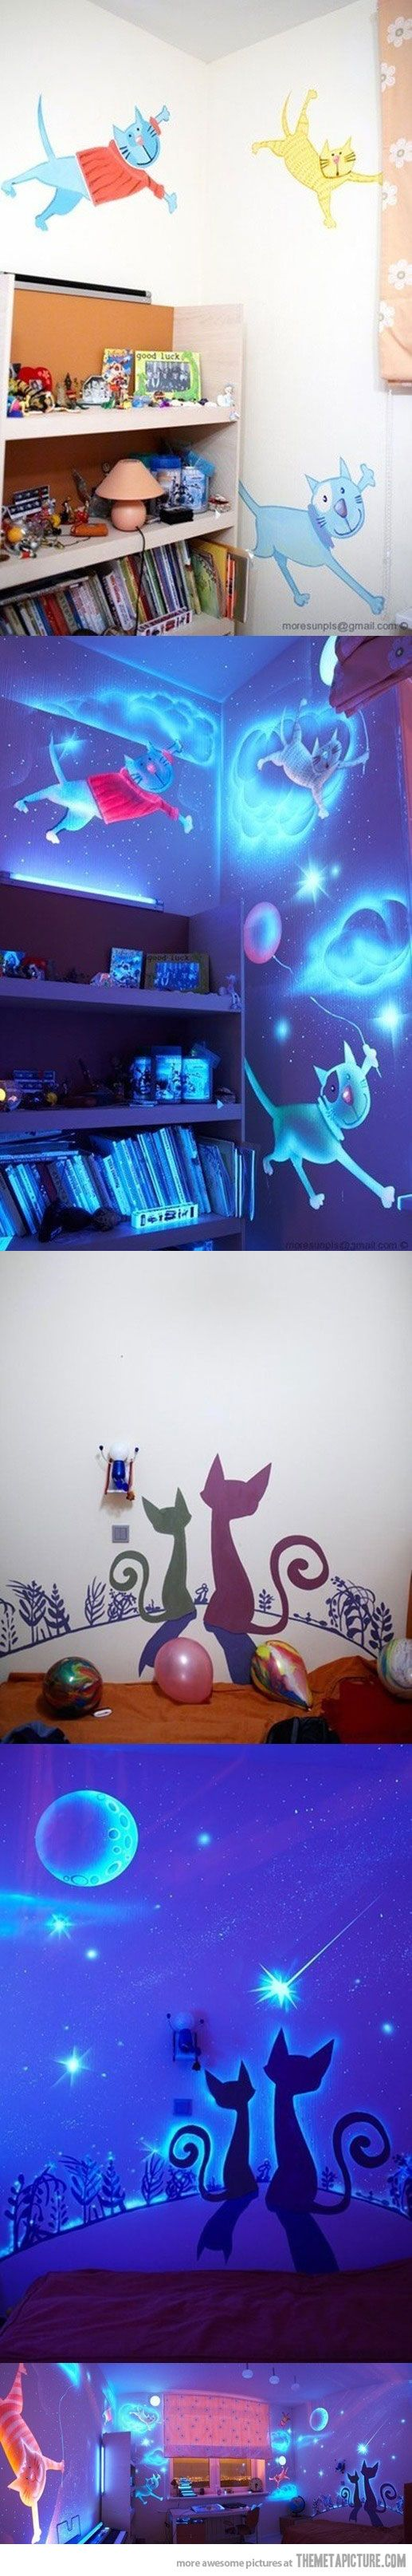 Glow in the dark paint! Wish I had this when I was younger.: Kids Bedrooms, Night Lights, Boys Rooms, Child Rooms, Future Kids, Black Lights, Child Bedrooms, Dark Wall, Kids Rooms